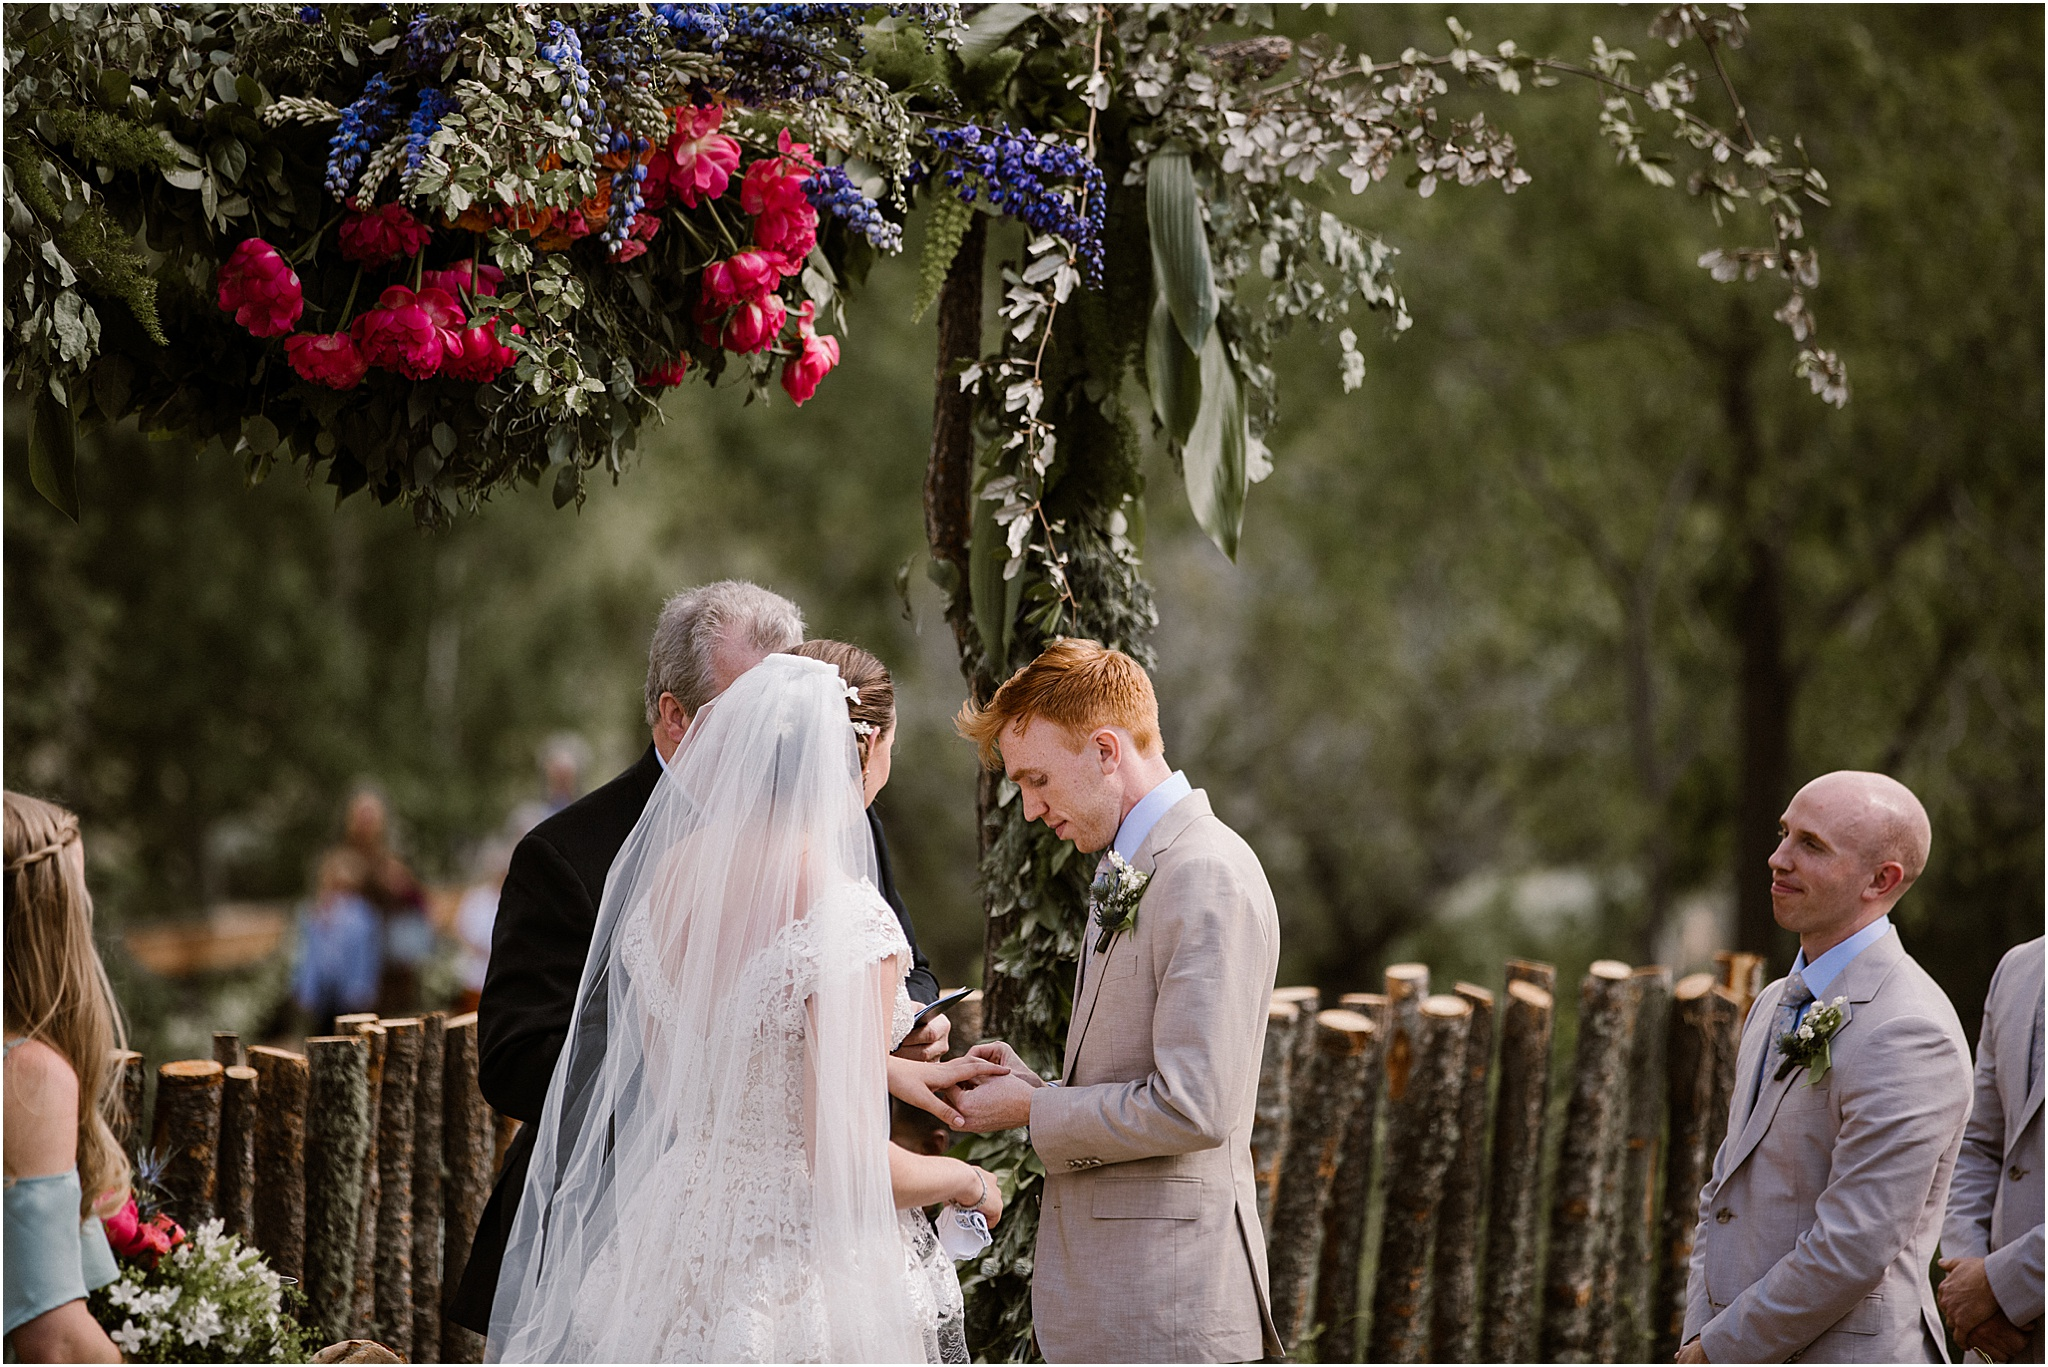 AMELIA_JASON_SANTA FE_ WEDDING_BLUE ROSE PHOTOGRAPHY61